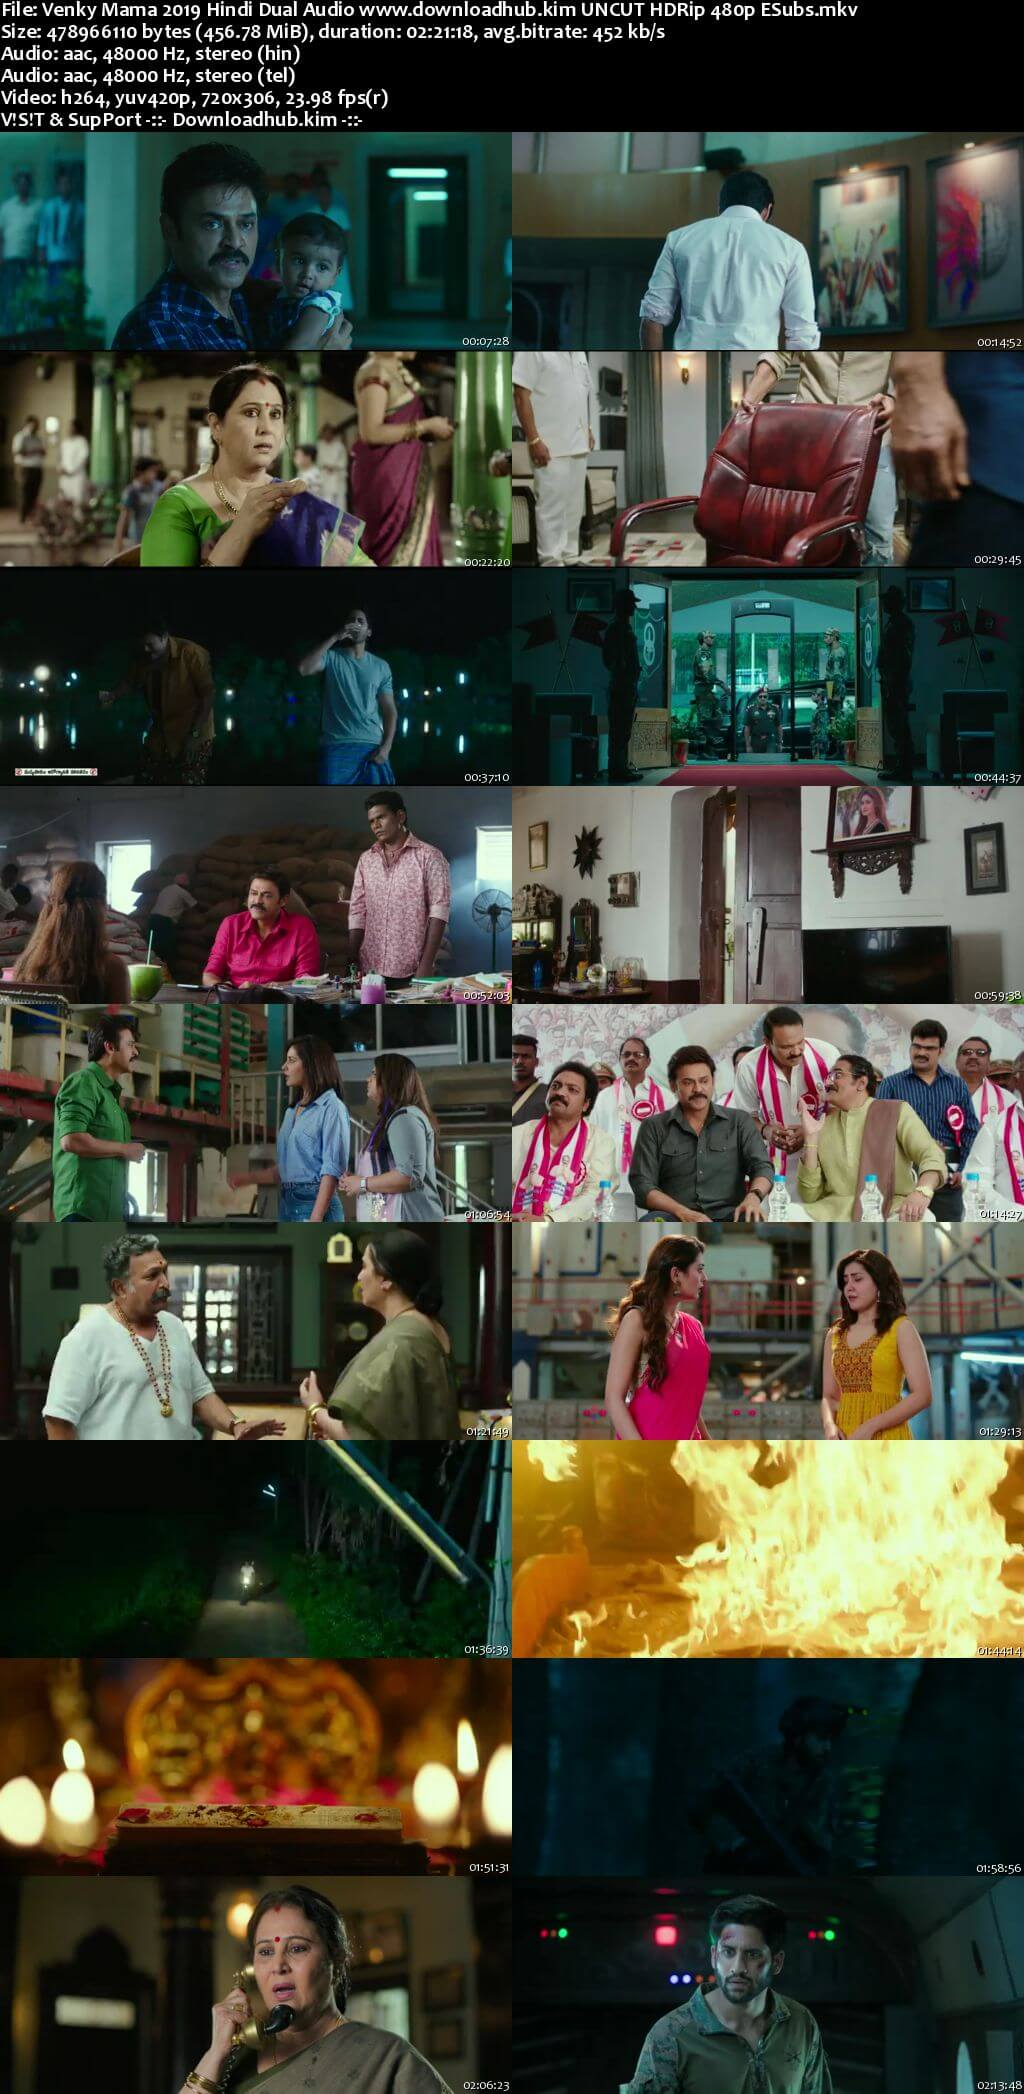 Venky Mama 2019 Hindi Dual Audio 450MB UNCUT HDRip 480p ESubs